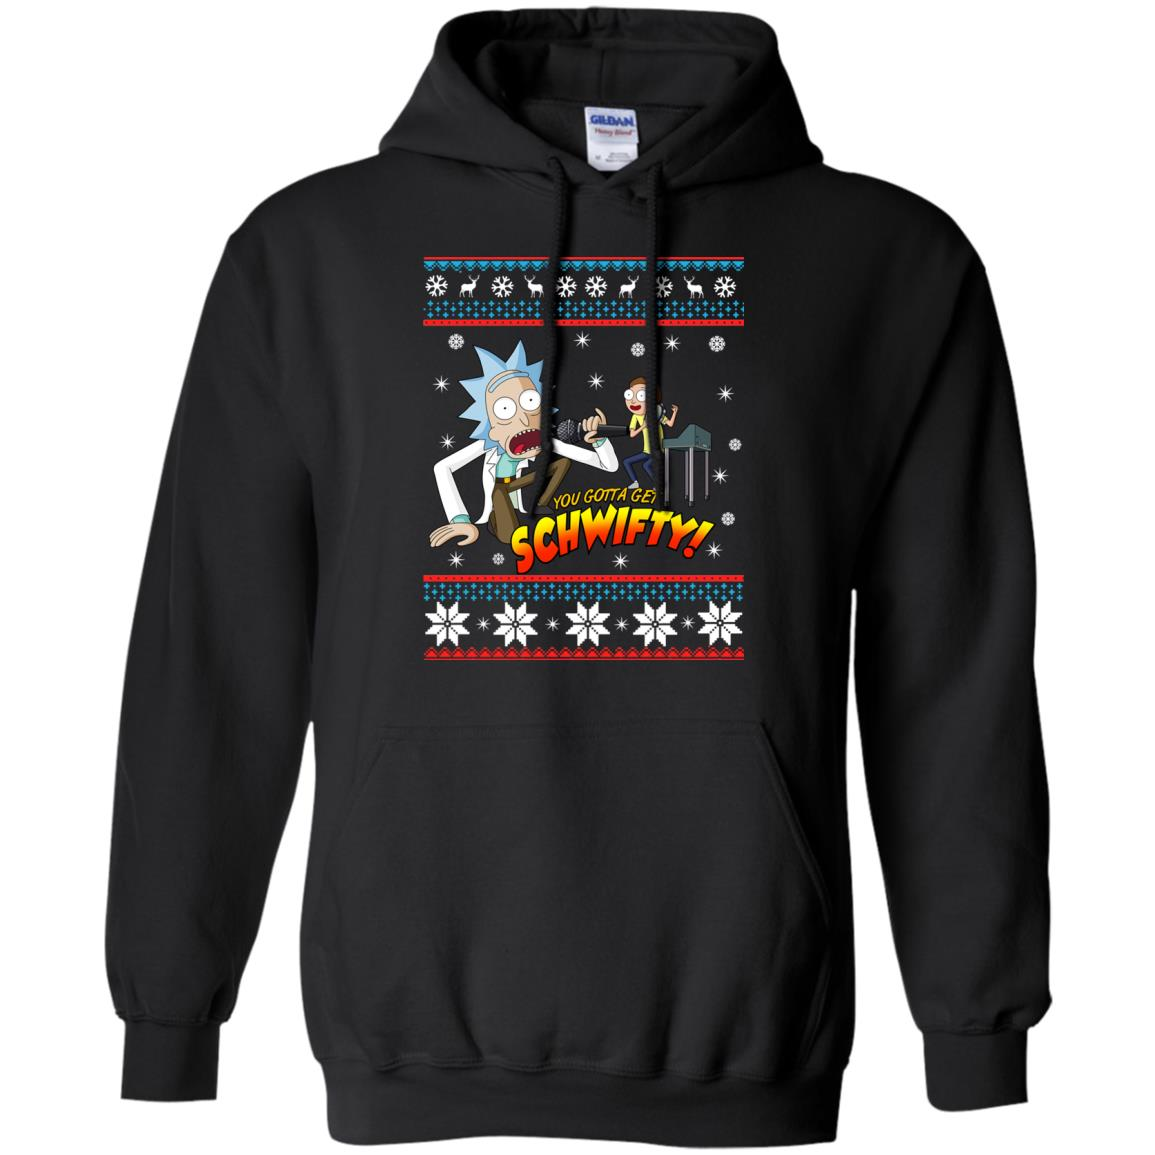 image 2413 - You gotta get Schwifty Ugly Christmas sweater, hoodie